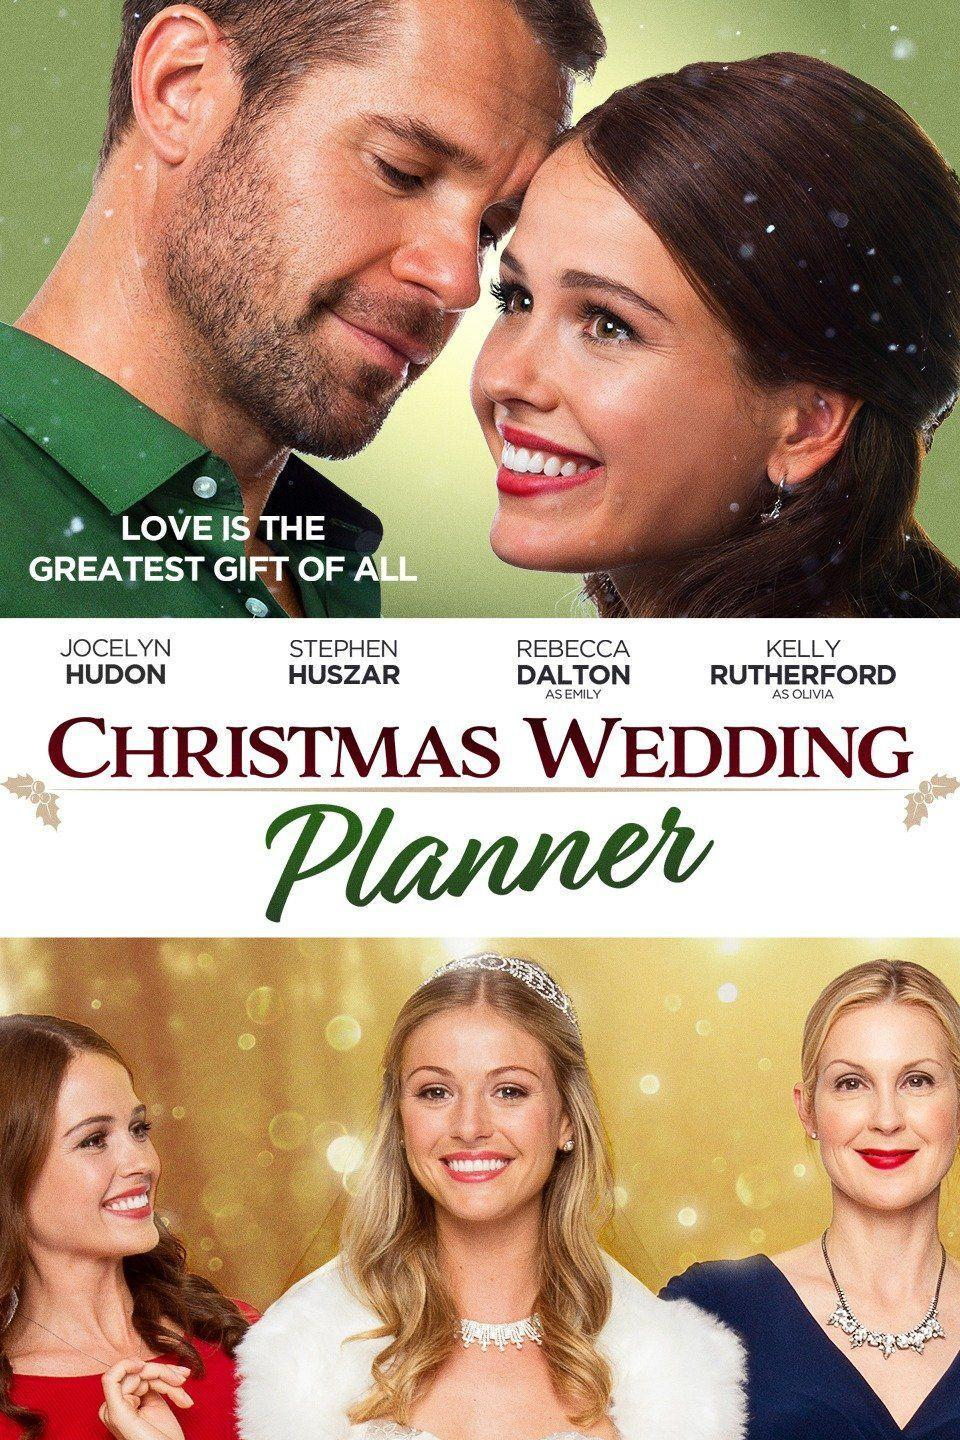 """<p>While wedding planner Kelsey is planning her cousin's nuptials, private investigator Connor McClane arrives and throws a wrench in her plans.</p><p><a class=""""link rapid-noclick-resp"""" href=""""https://www.netflix.com/title/80224054"""" rel=""""nofollow noopener"""" target=""""_blank"""" data-ylk=""""slk:STREAM NOW"""">STREAM NOW</a></p>"""